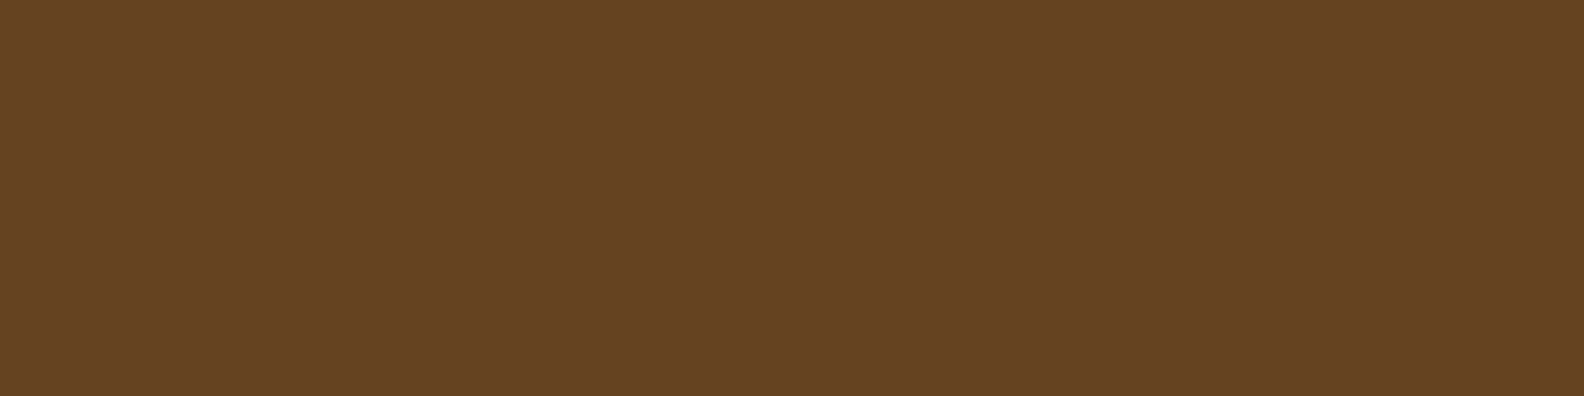 1584x396 Otter Brown Solid Color Background